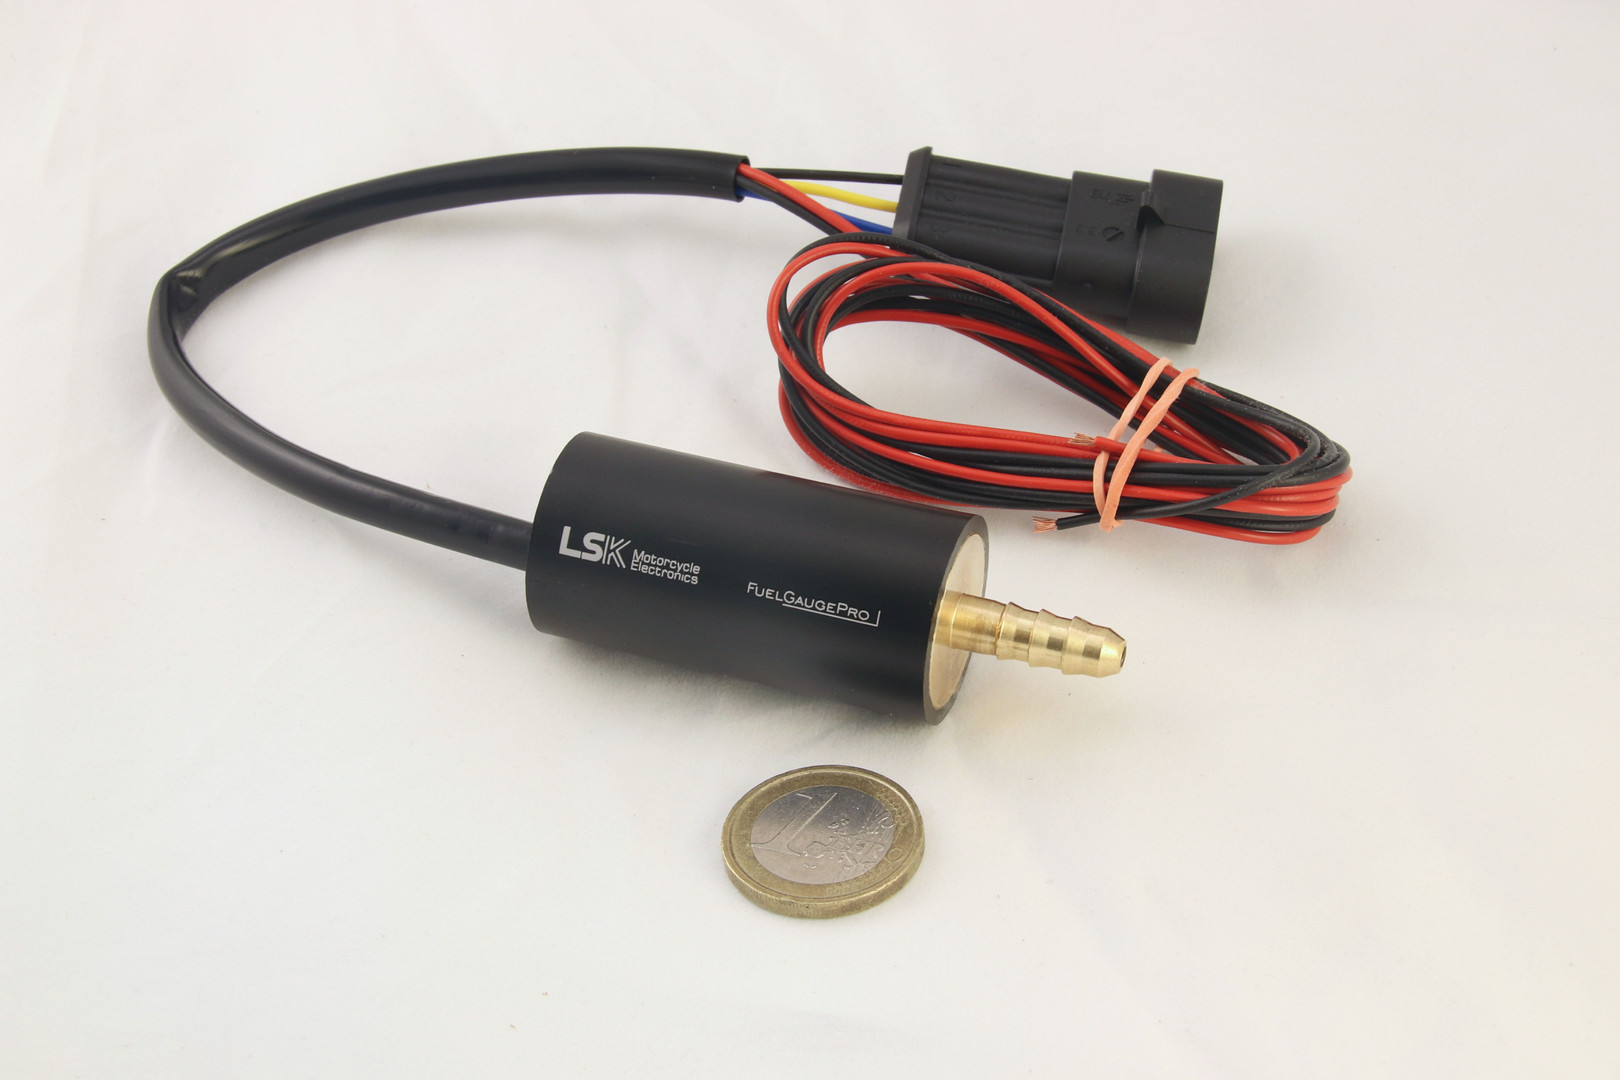 FuelGaugePro - Float-free Fuel Level Sensor